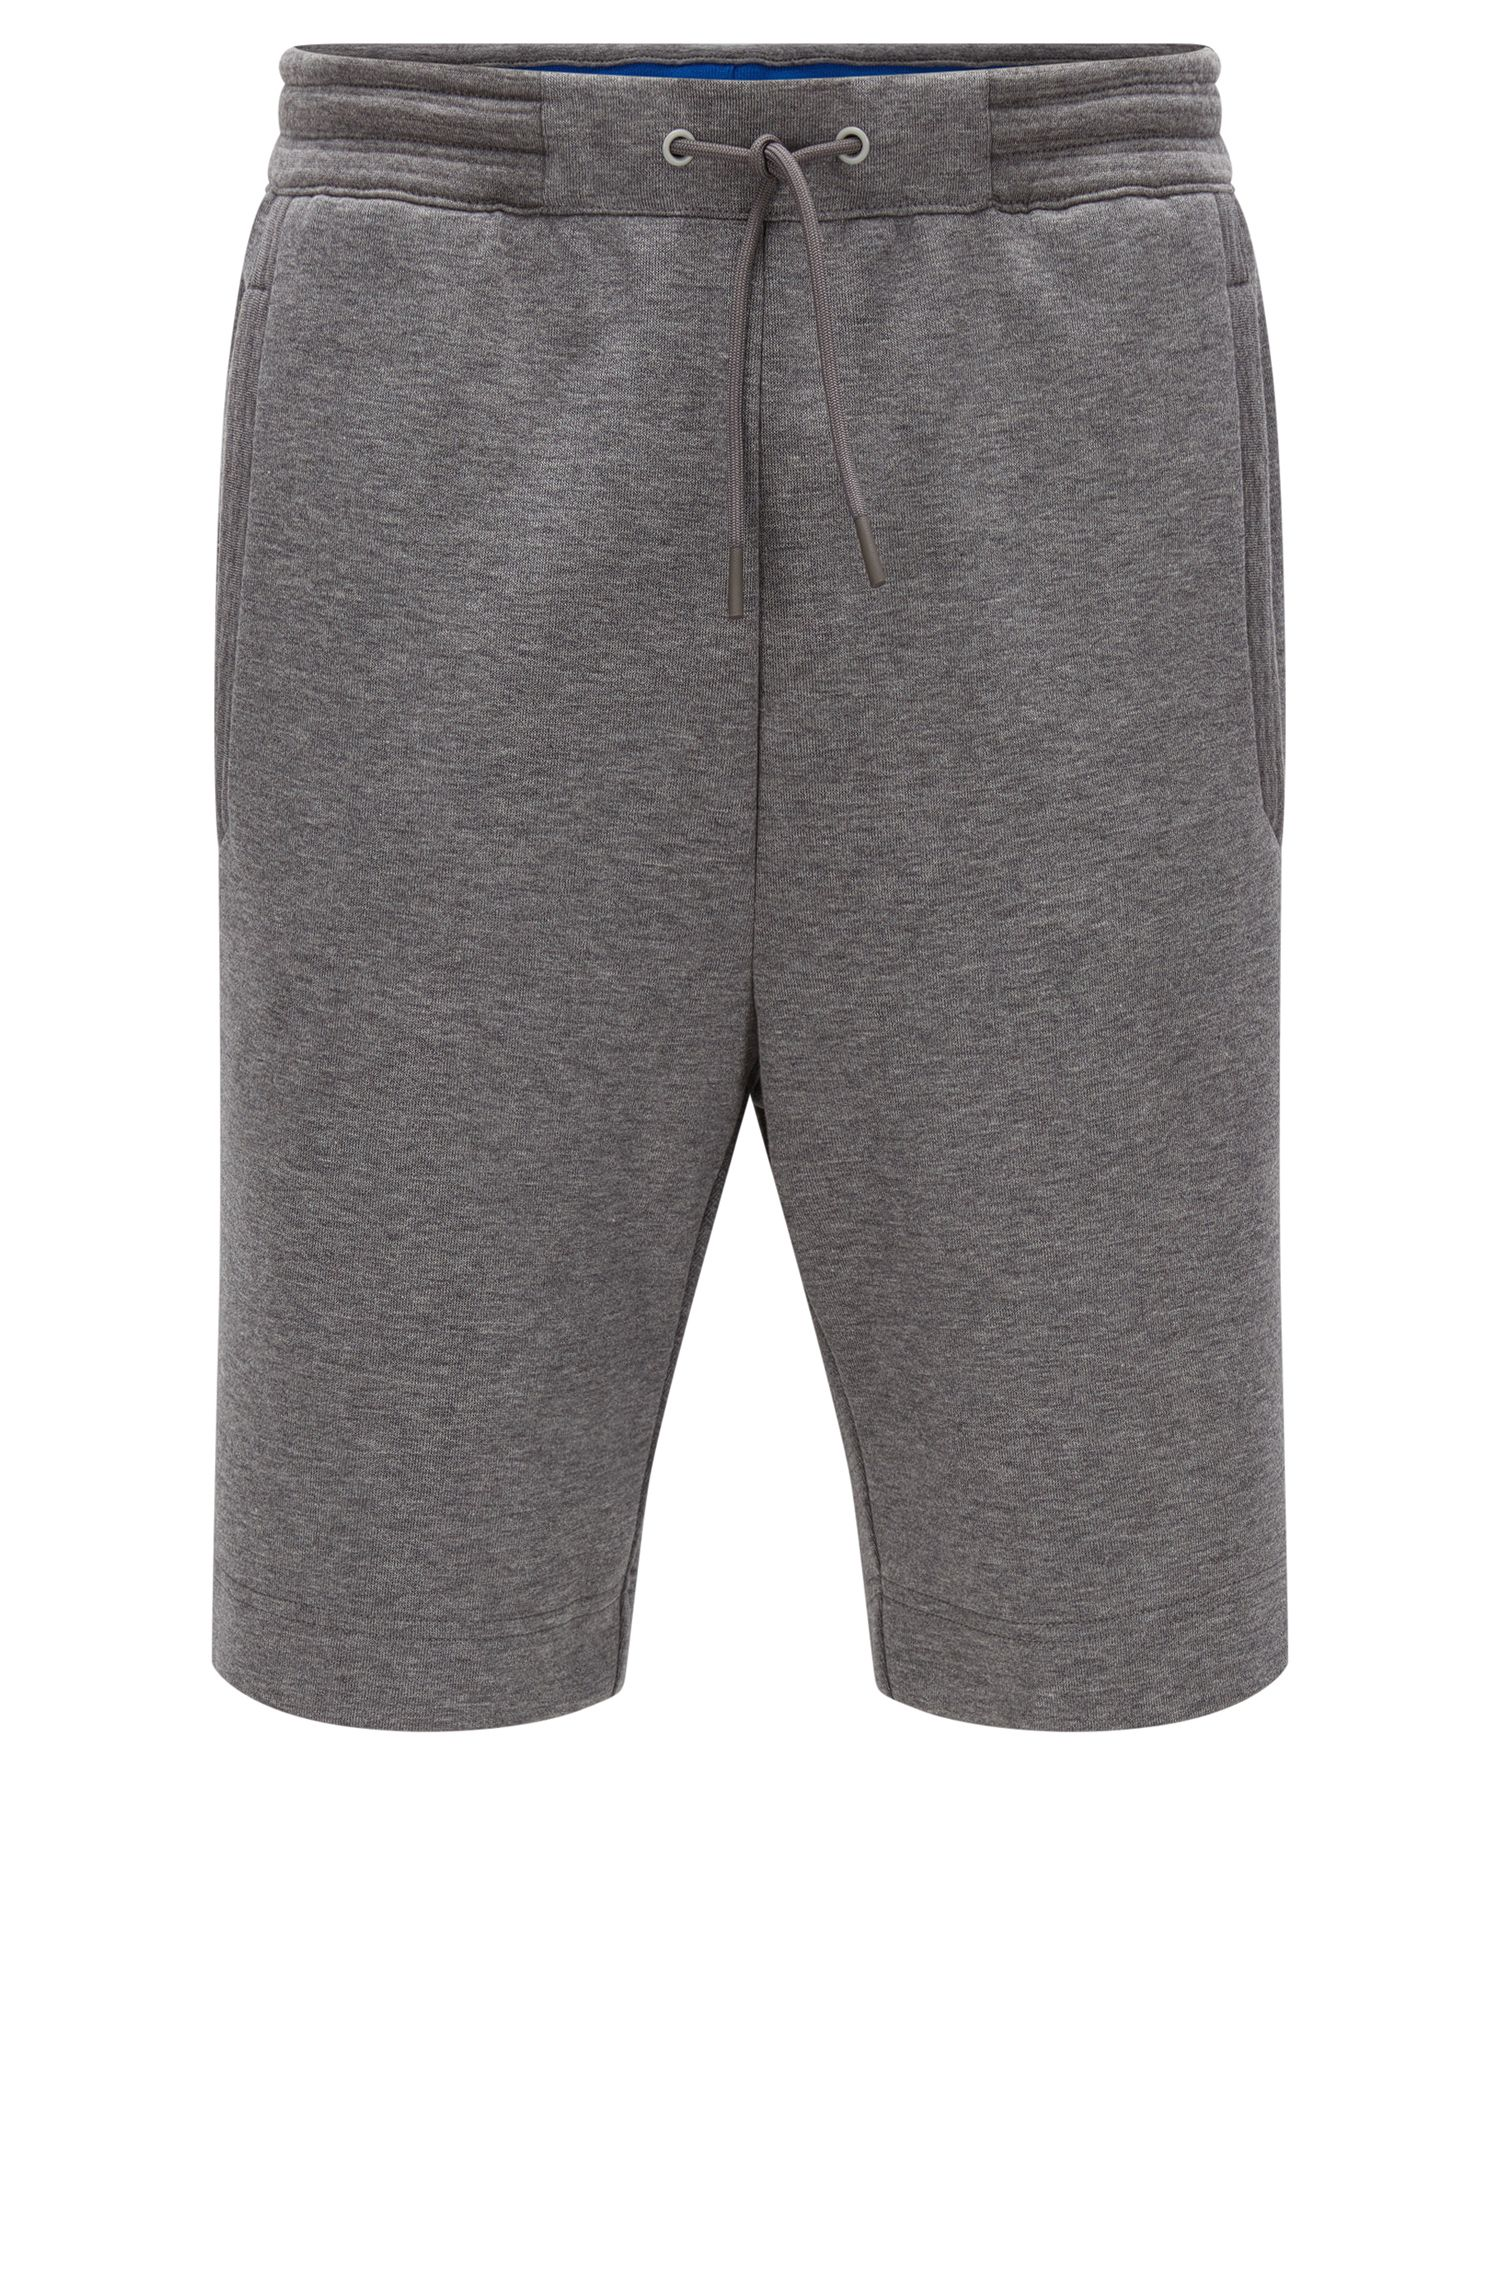 Pantaloncini corti regular fit in misto cotone